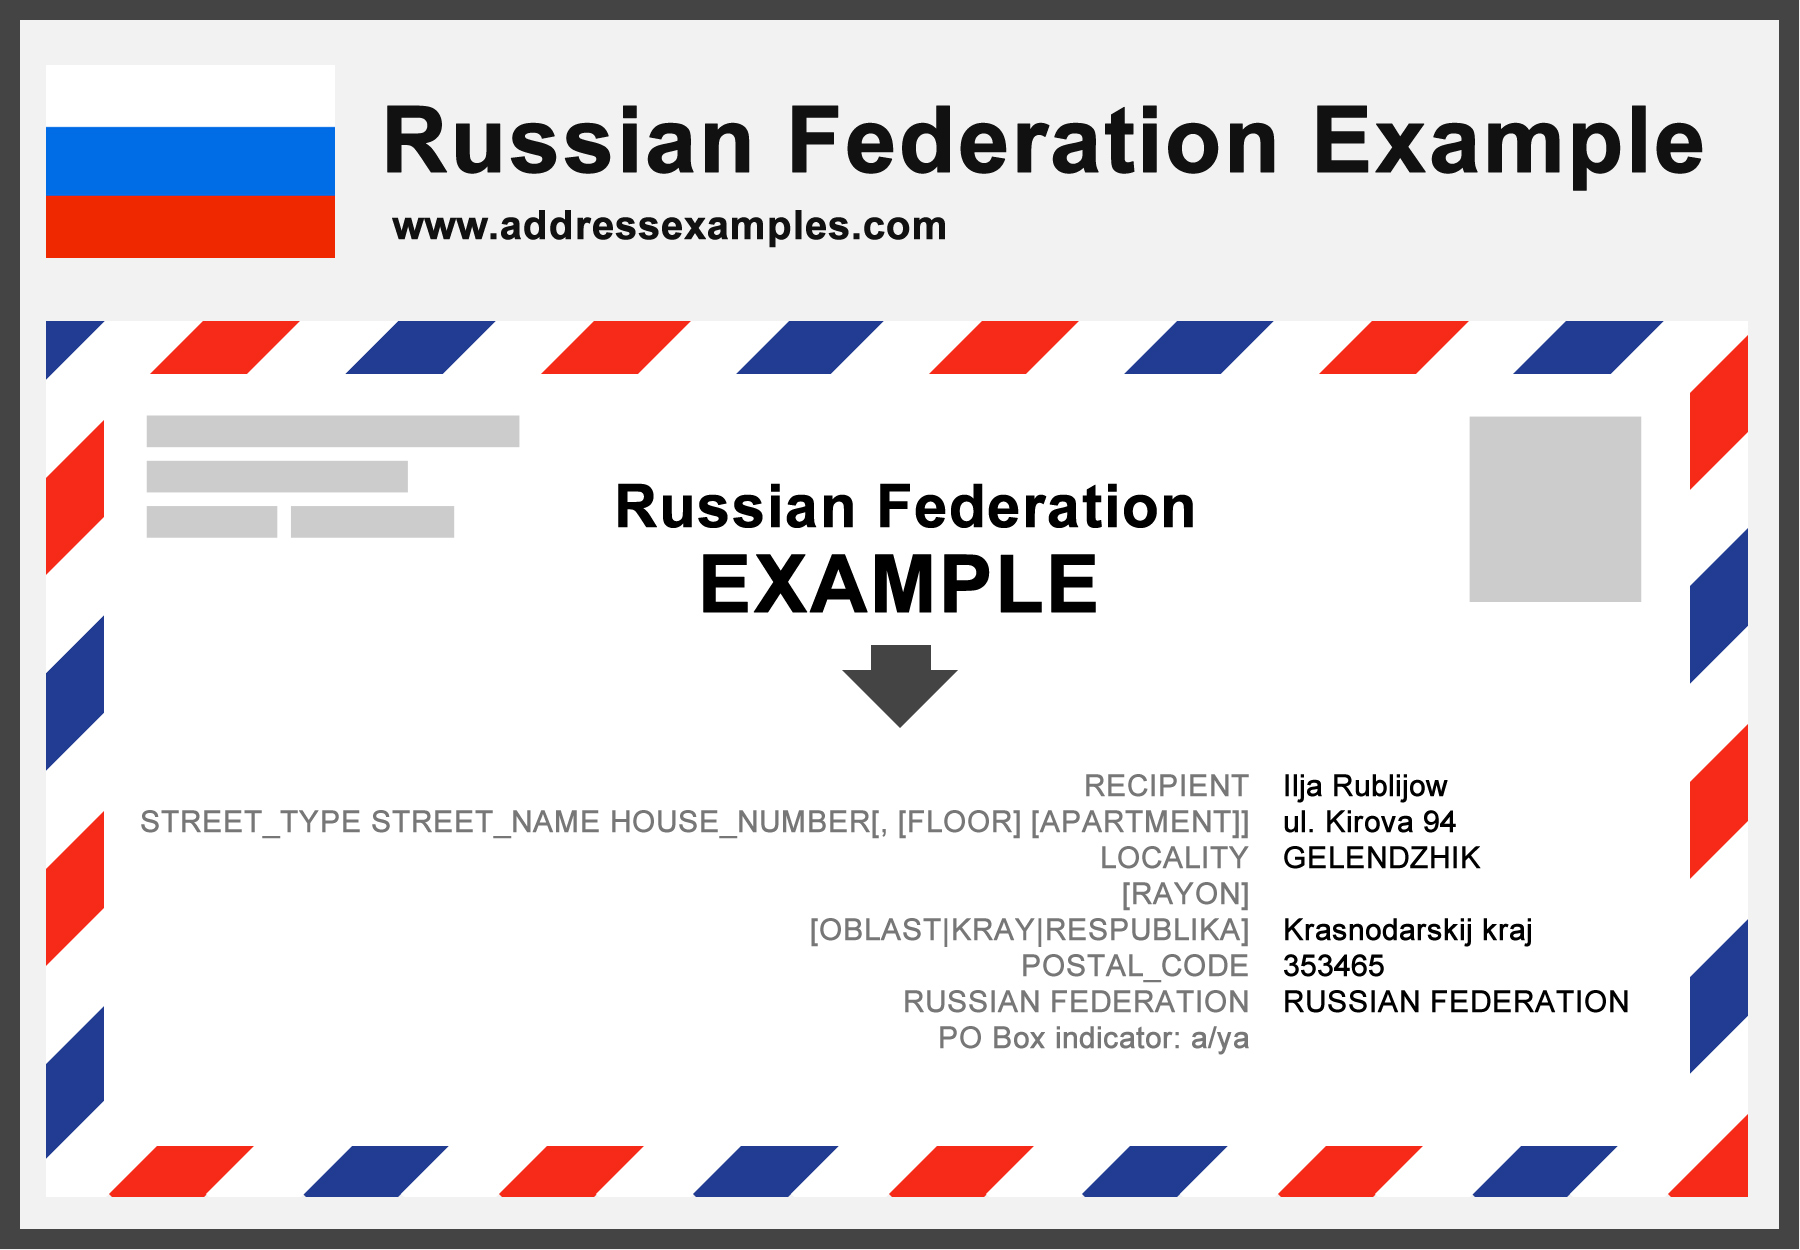 Russian Federation Address Example